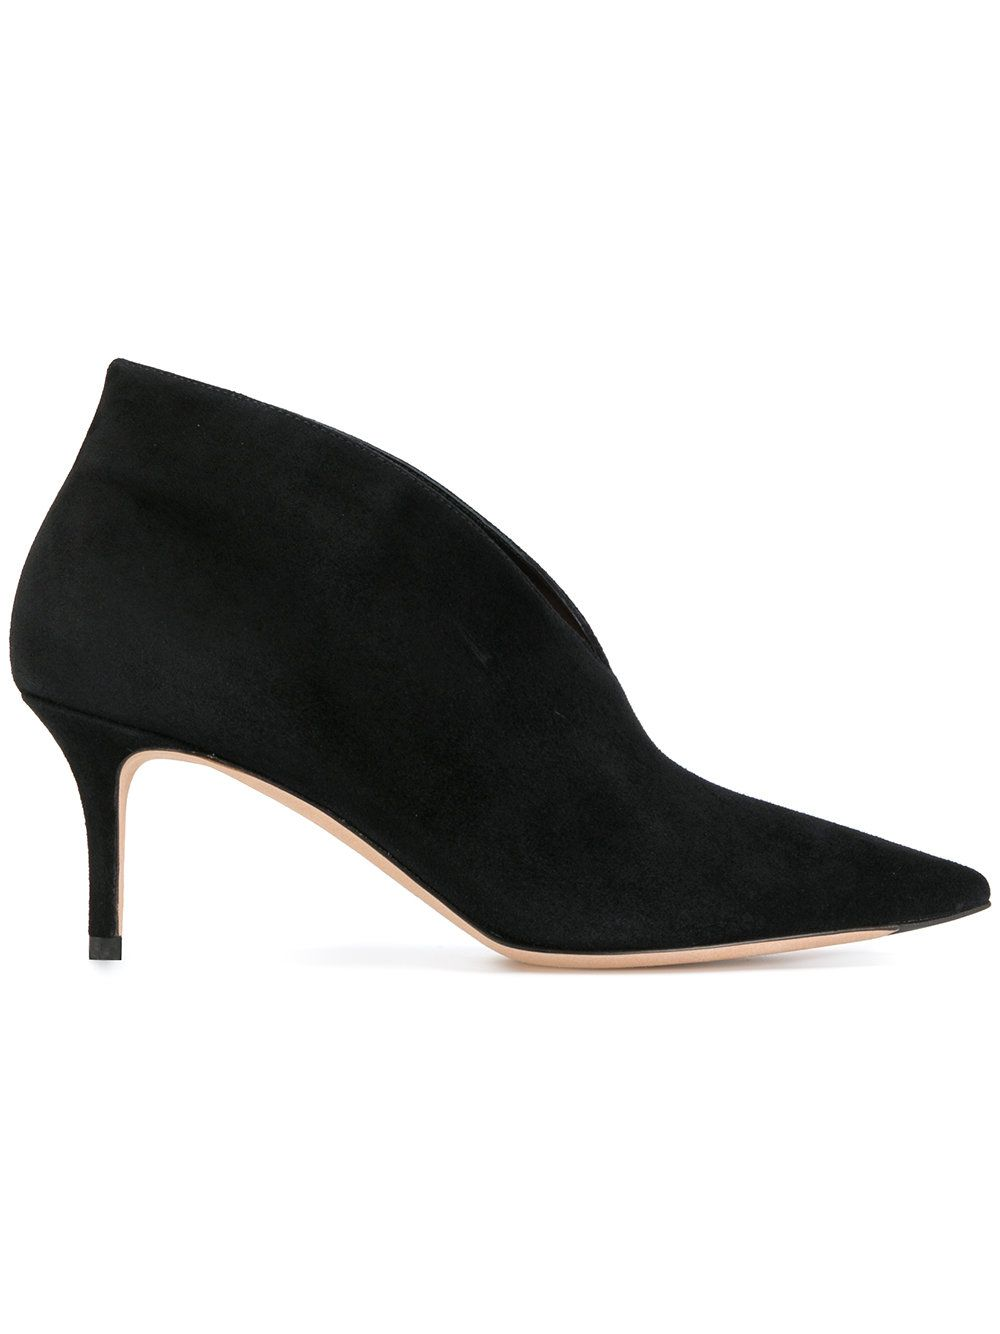 UNüTZER Pointed ankle boots